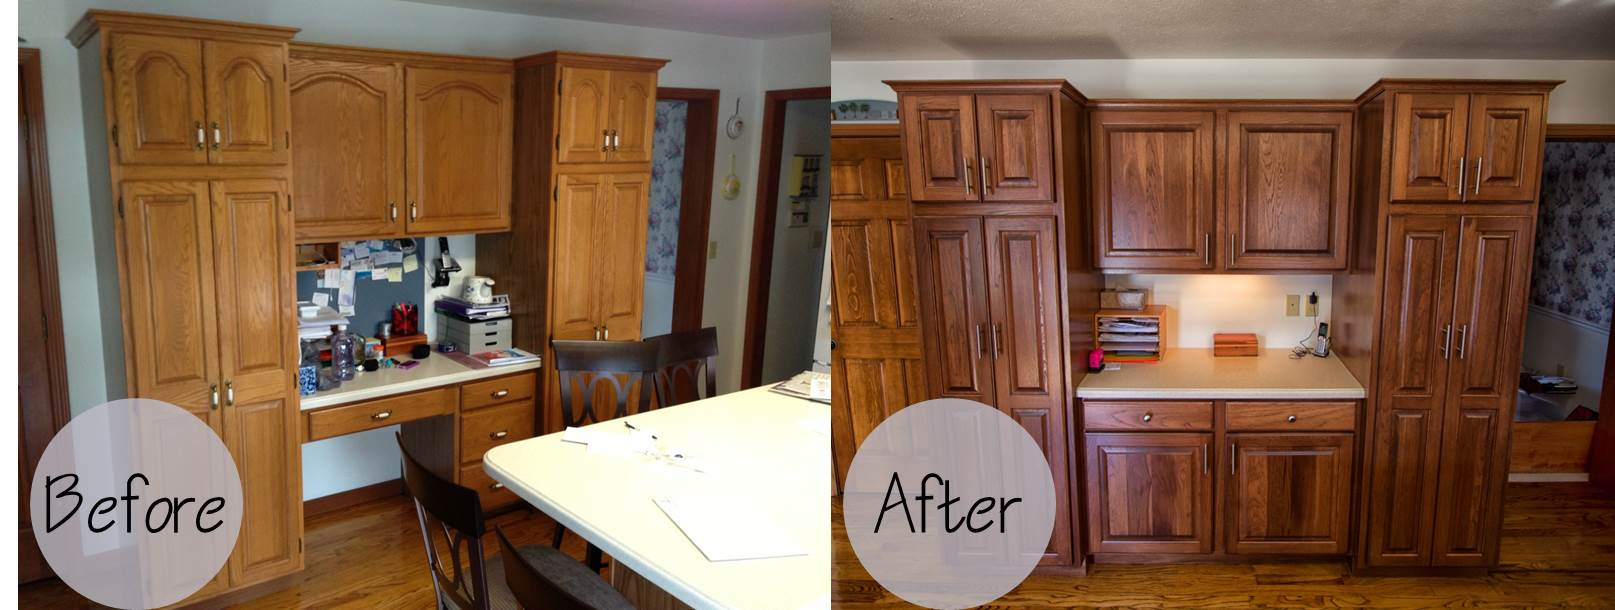 inside to ideas home low your best cost cabinet kitchen diy refacing depot resurfacing finish supplies